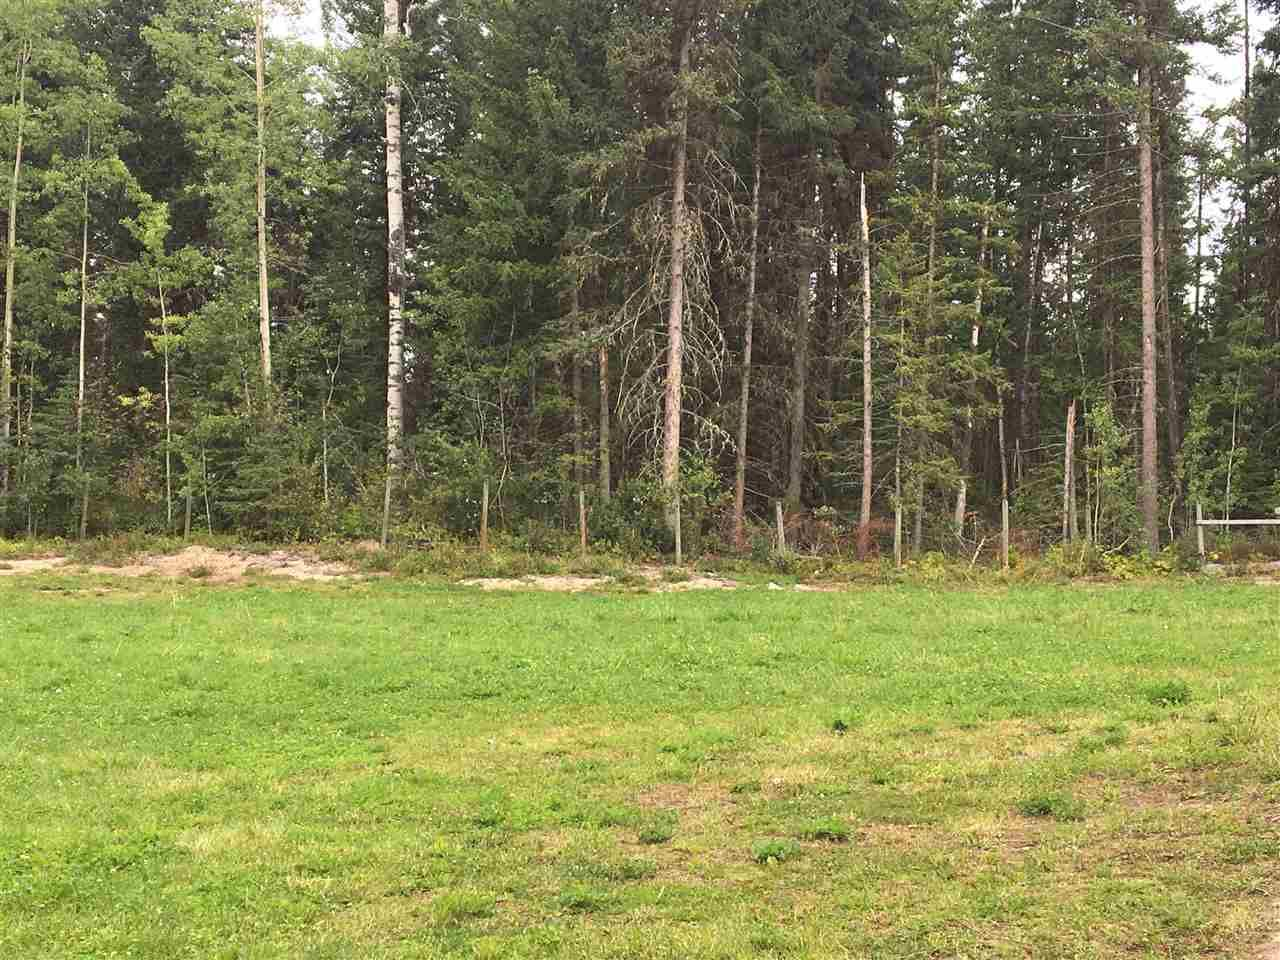 Photo 19: Photos: 2404 N VERNON Road in Quesnel: Bouchie Lake Manufactured Home for sale (Quesnel (Zone 28))  : MLS®# R2492081